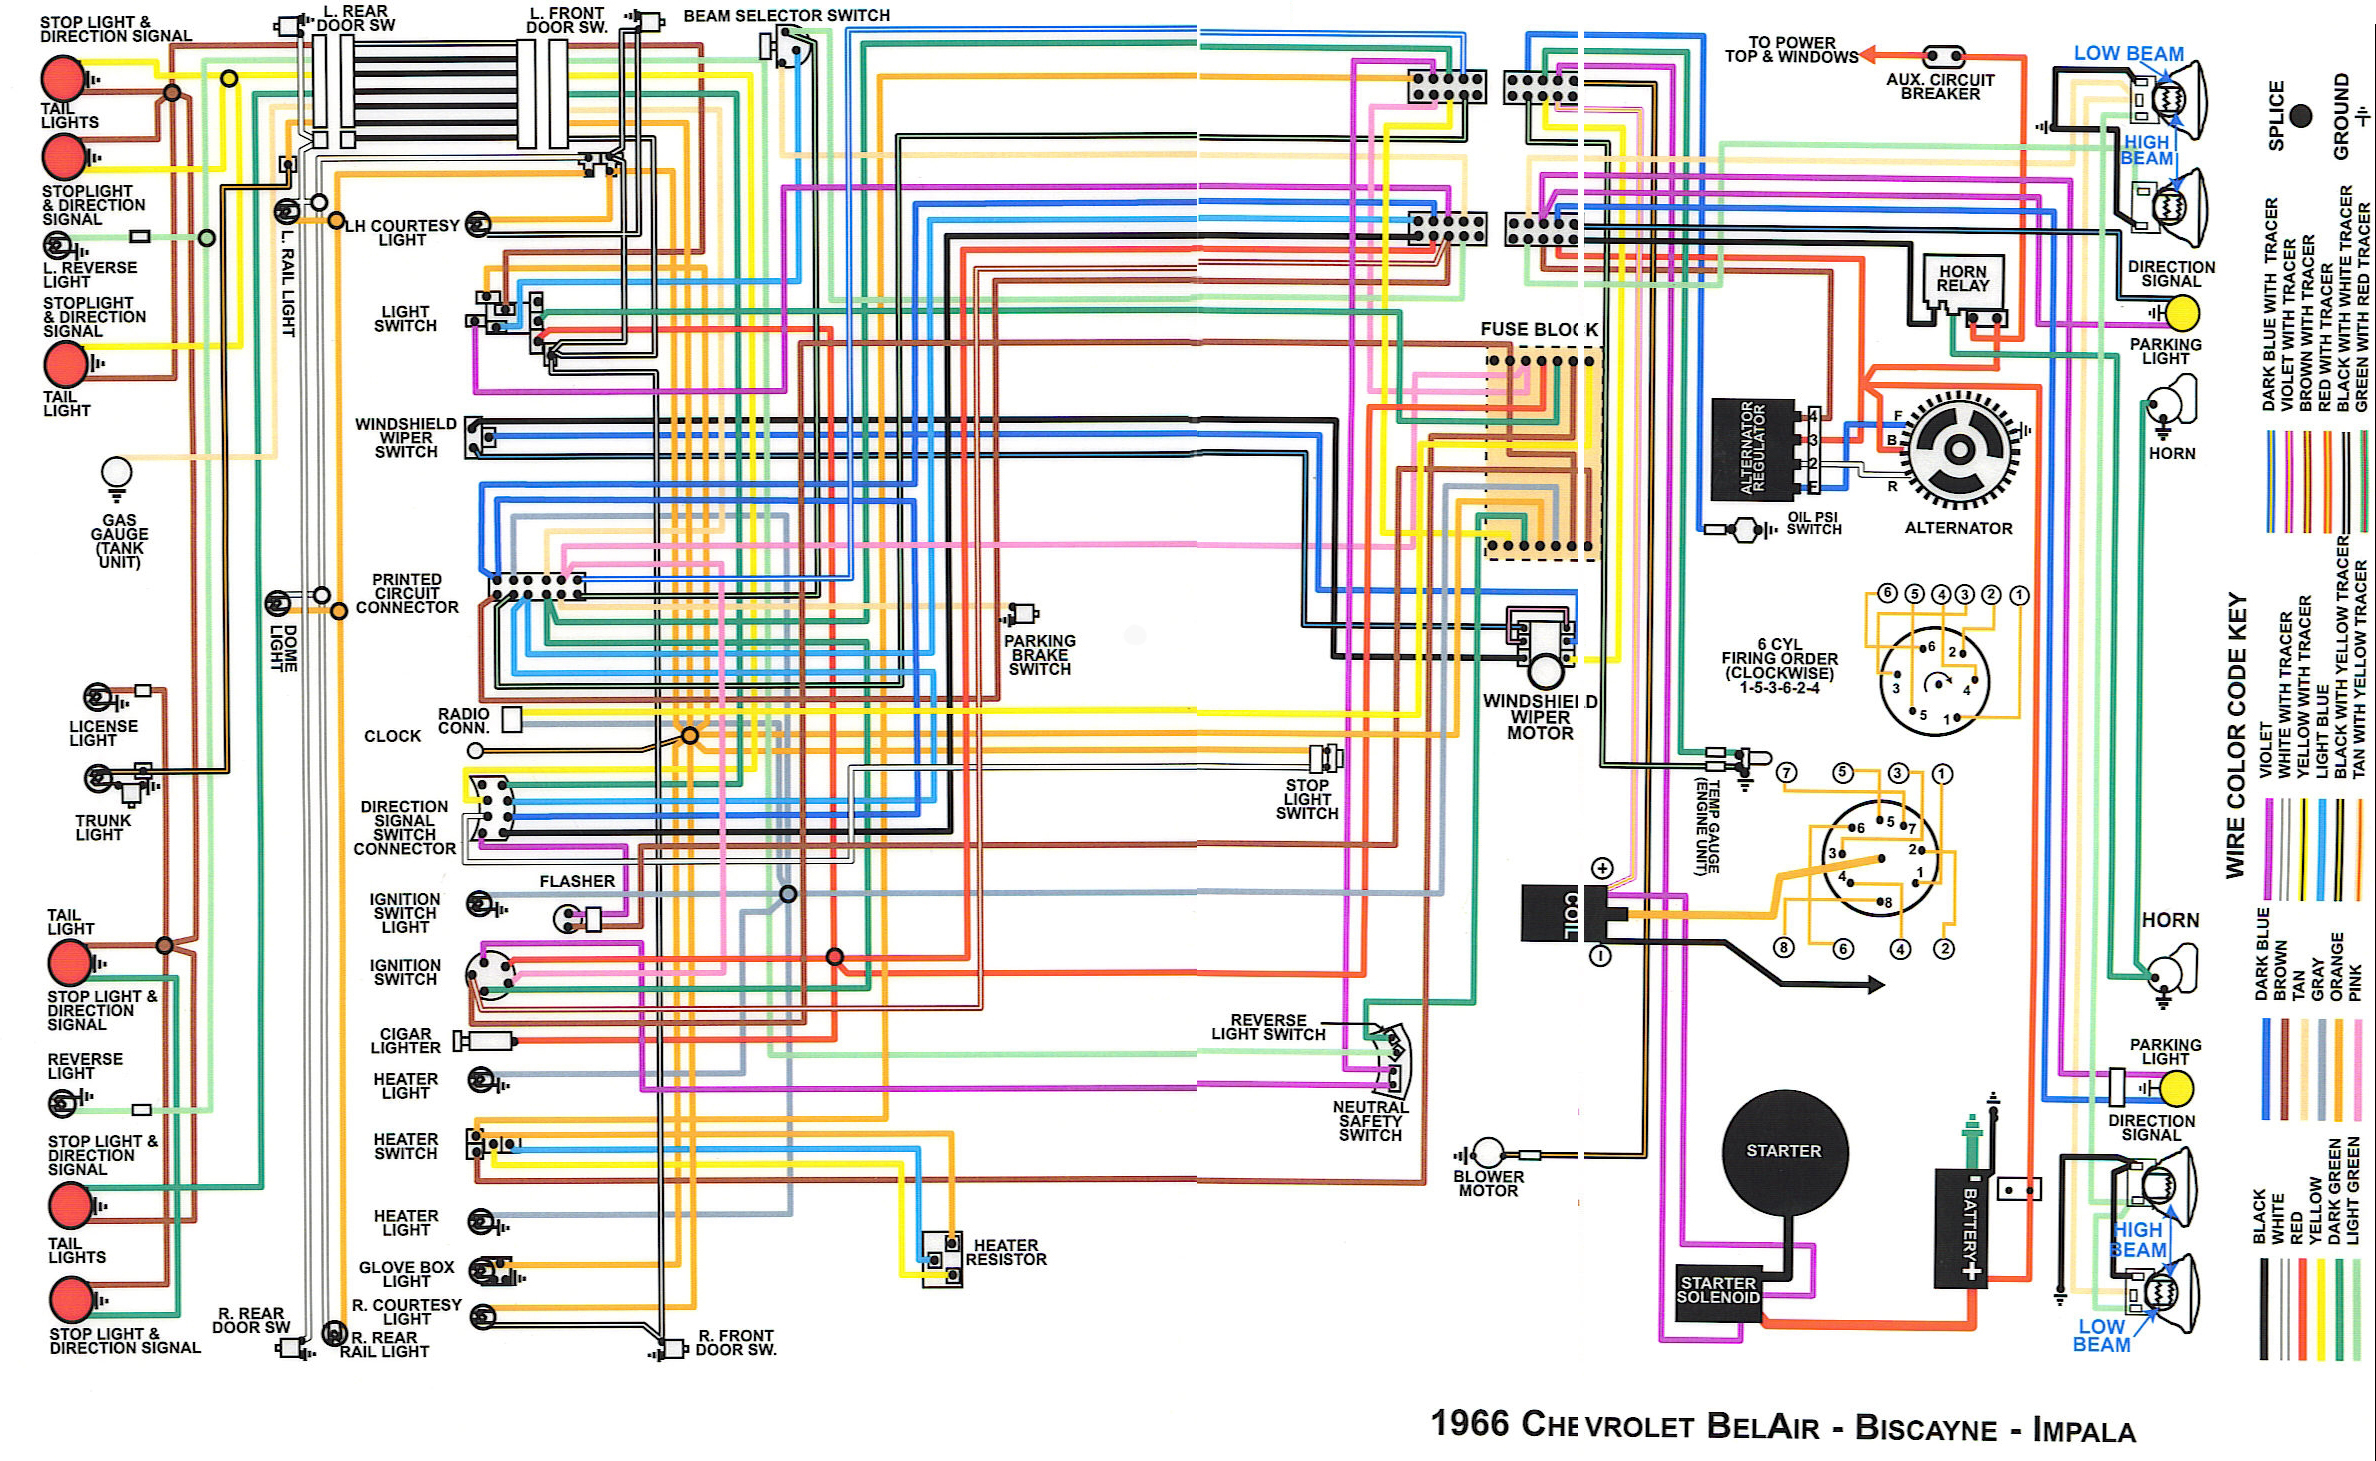 1964 chevy truck color wiring diagram 2001 s10 tail light 1966 harness